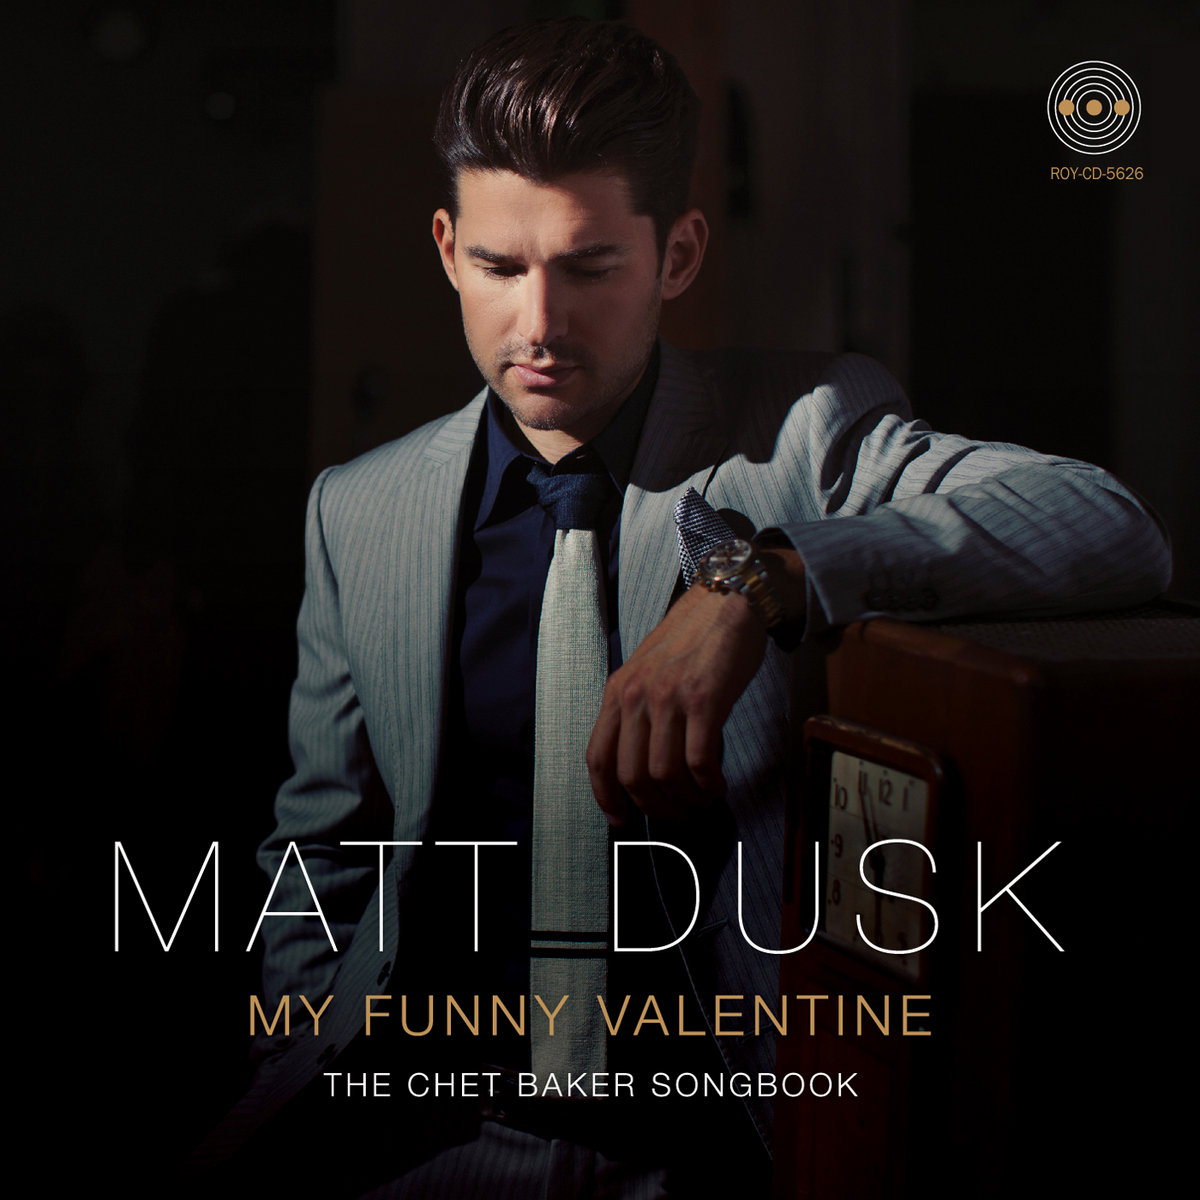 From My Funny Valentine: The Chet Baker Songbook By Matt Dusk